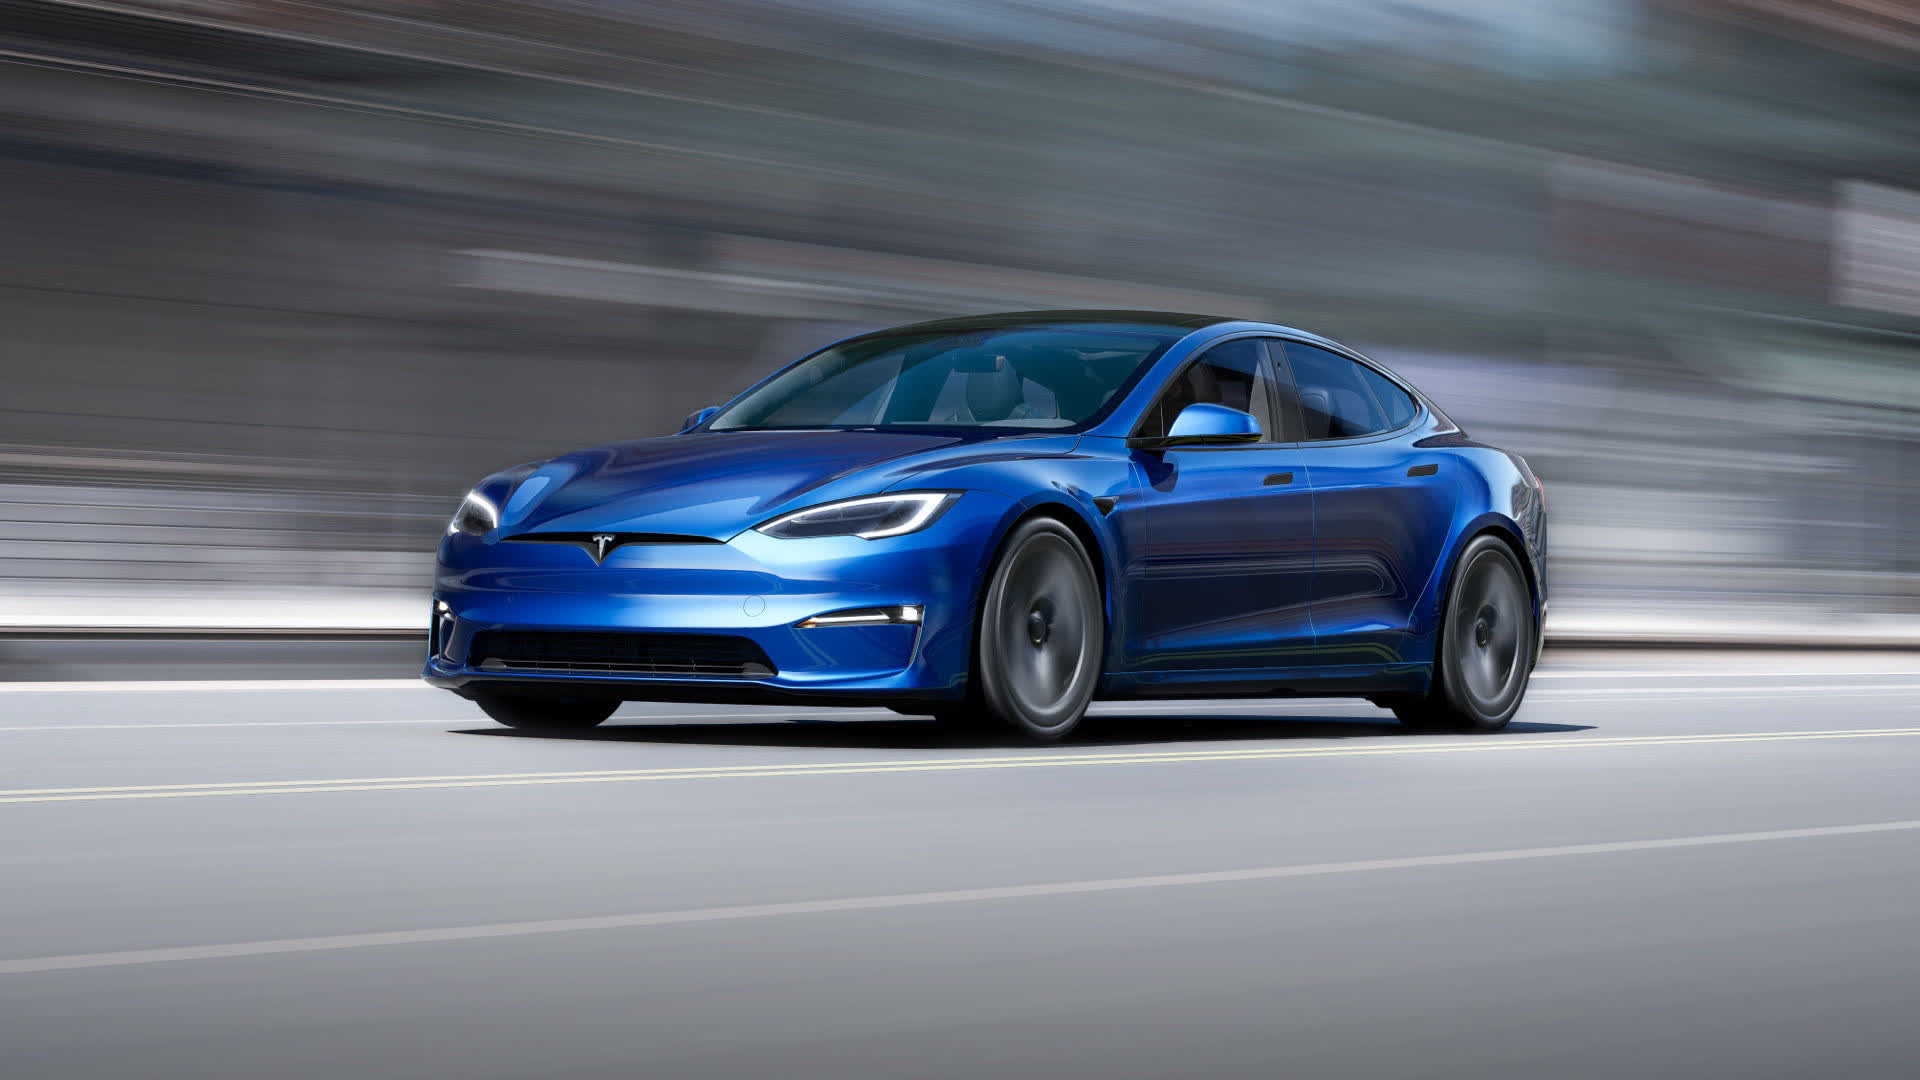 Tesla Model S and Model X get their first major redesign, updated powertrains and a yoke steering wheel